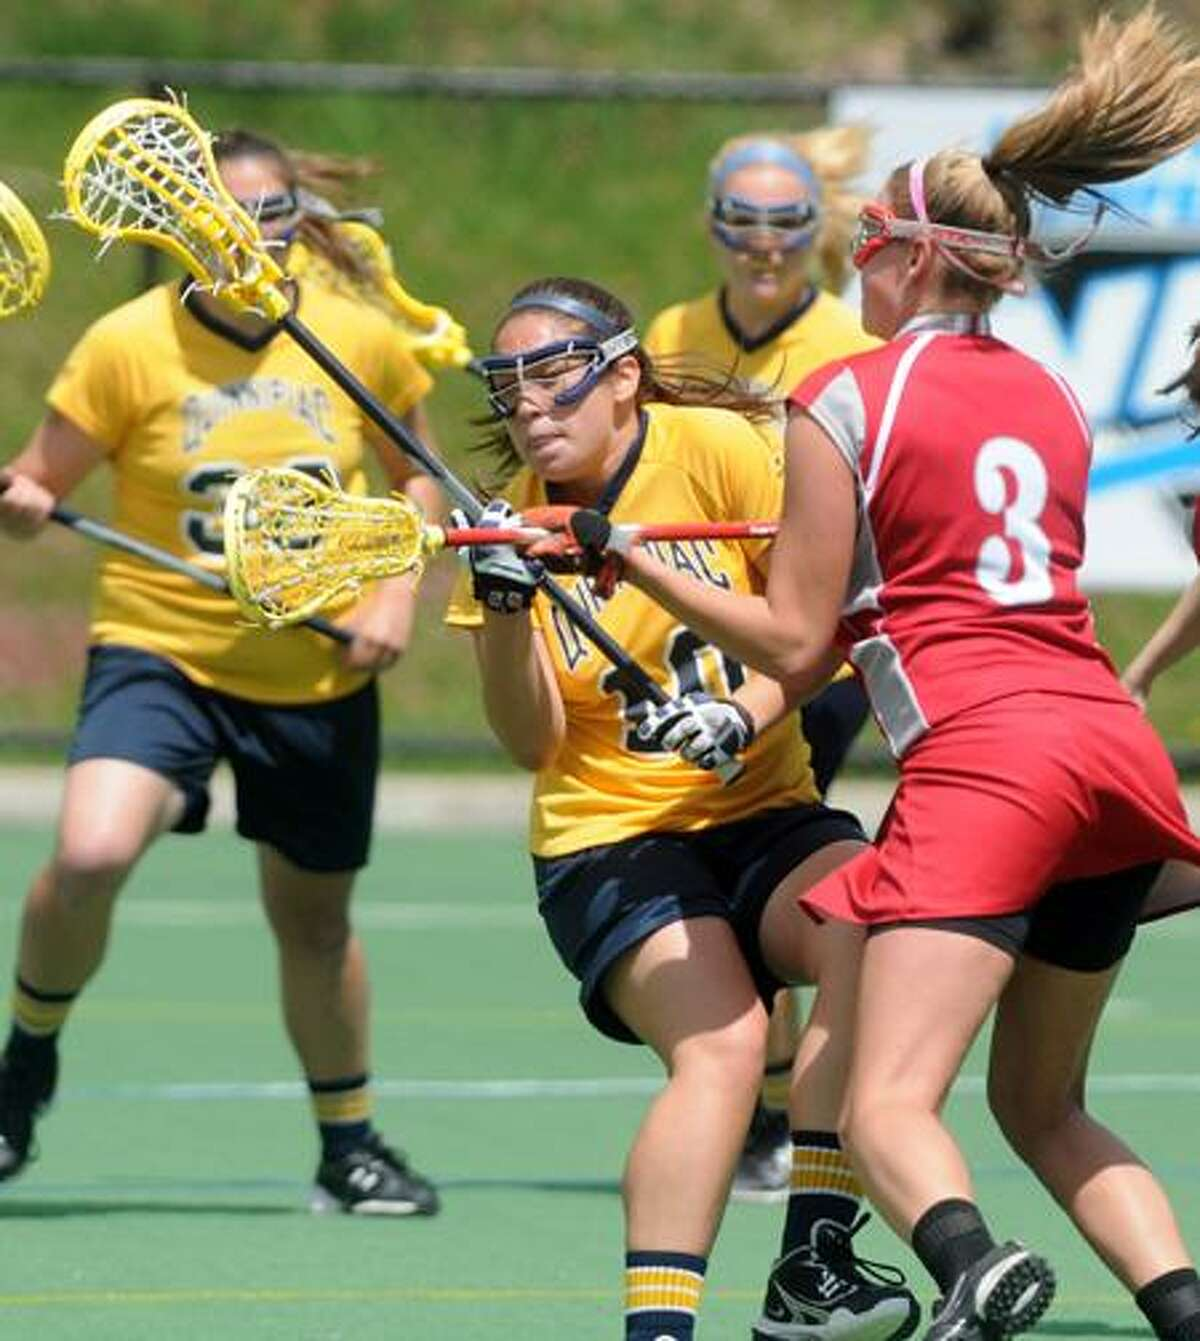 Sacred Heart against Quinnipiac Univ. in the NEC women's lacrosse semi-final at QU, first half action. QU's Marissa Caroleo (#10) with the ball pressured by SHU's Kate Kmiotek (#3).Photo by Mara Lavitt/New Haven Register4/29/11